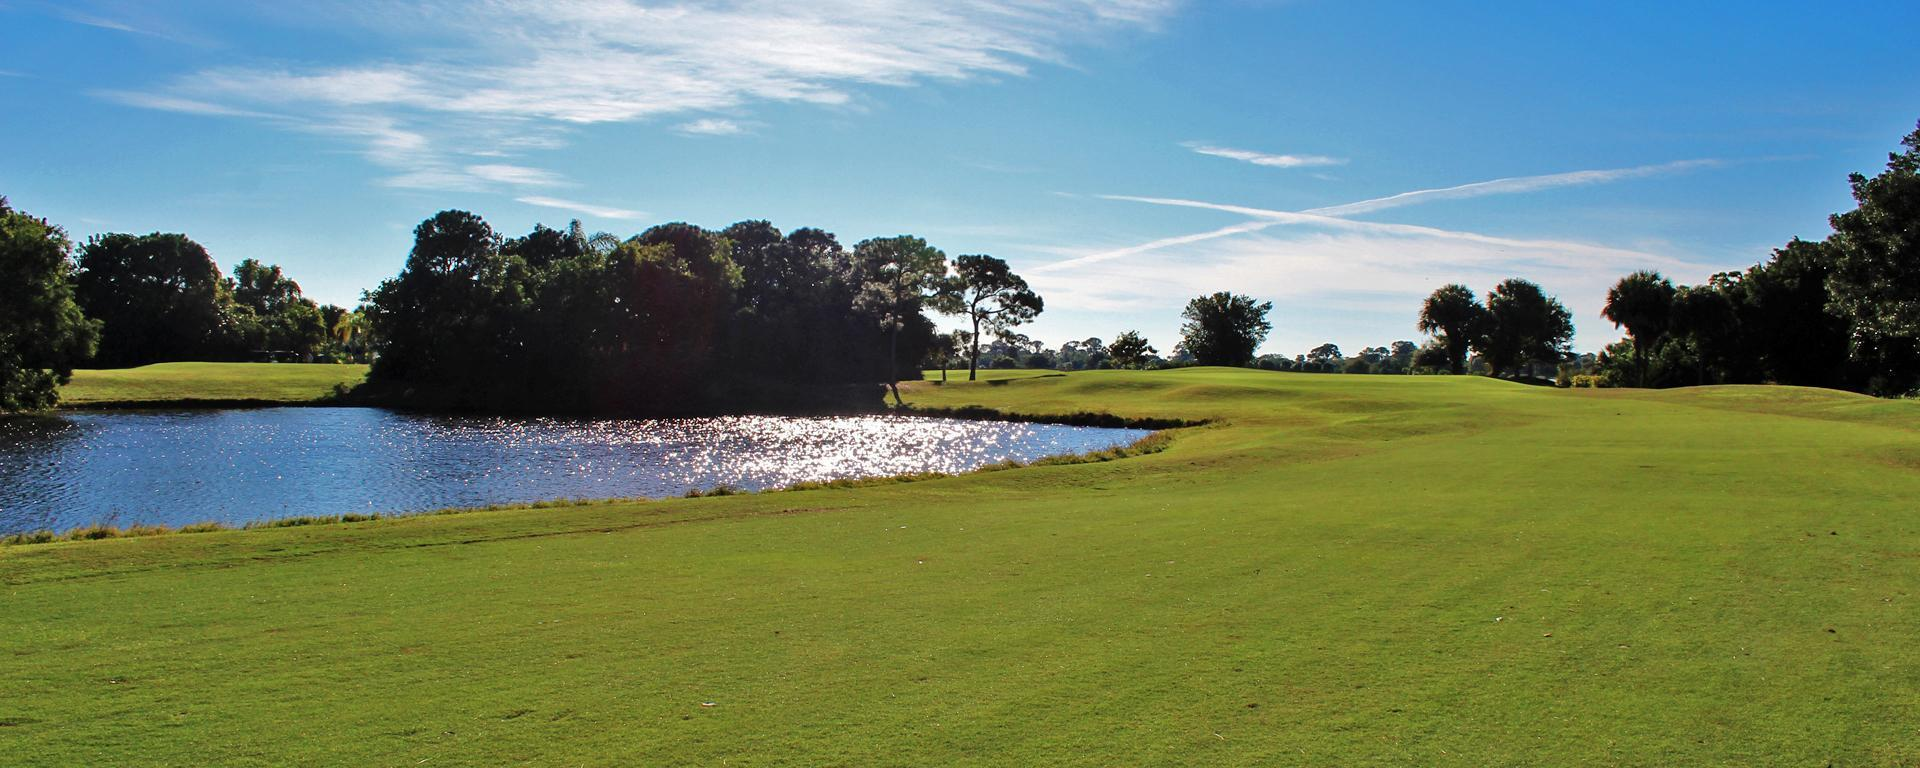 Martin County Golf Course